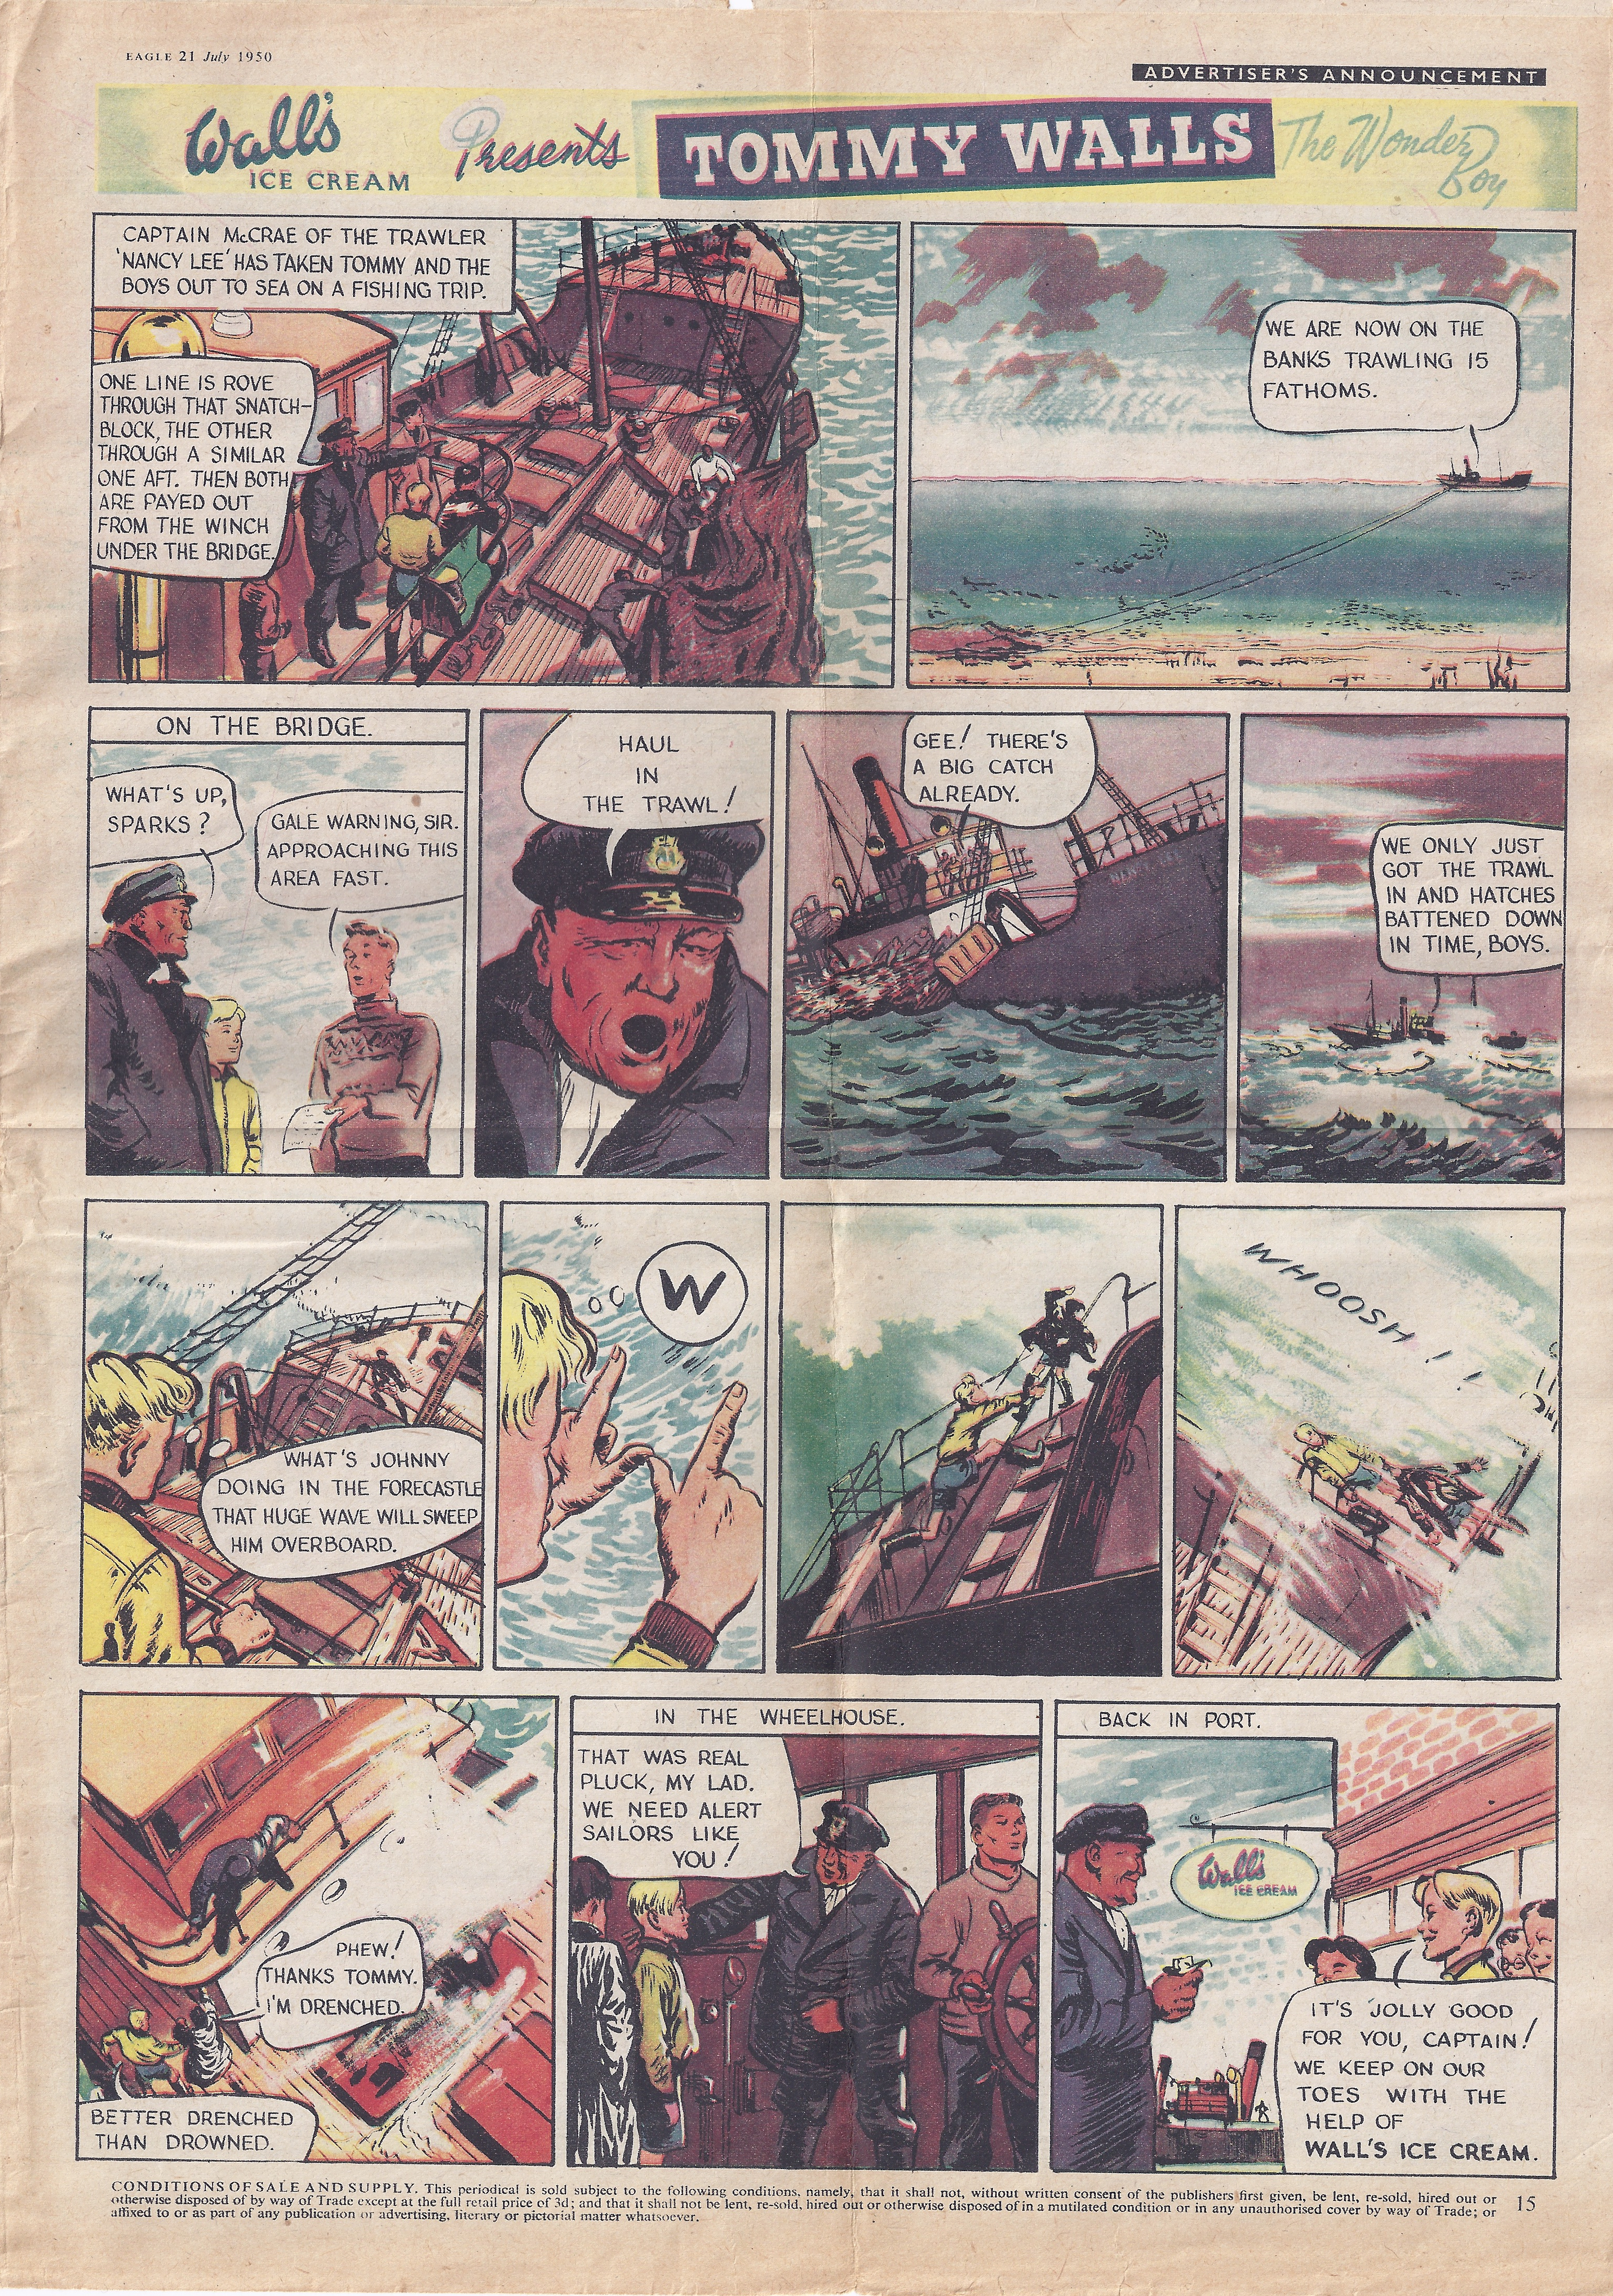 Tommy Walls comic page from Eagle, November 1950